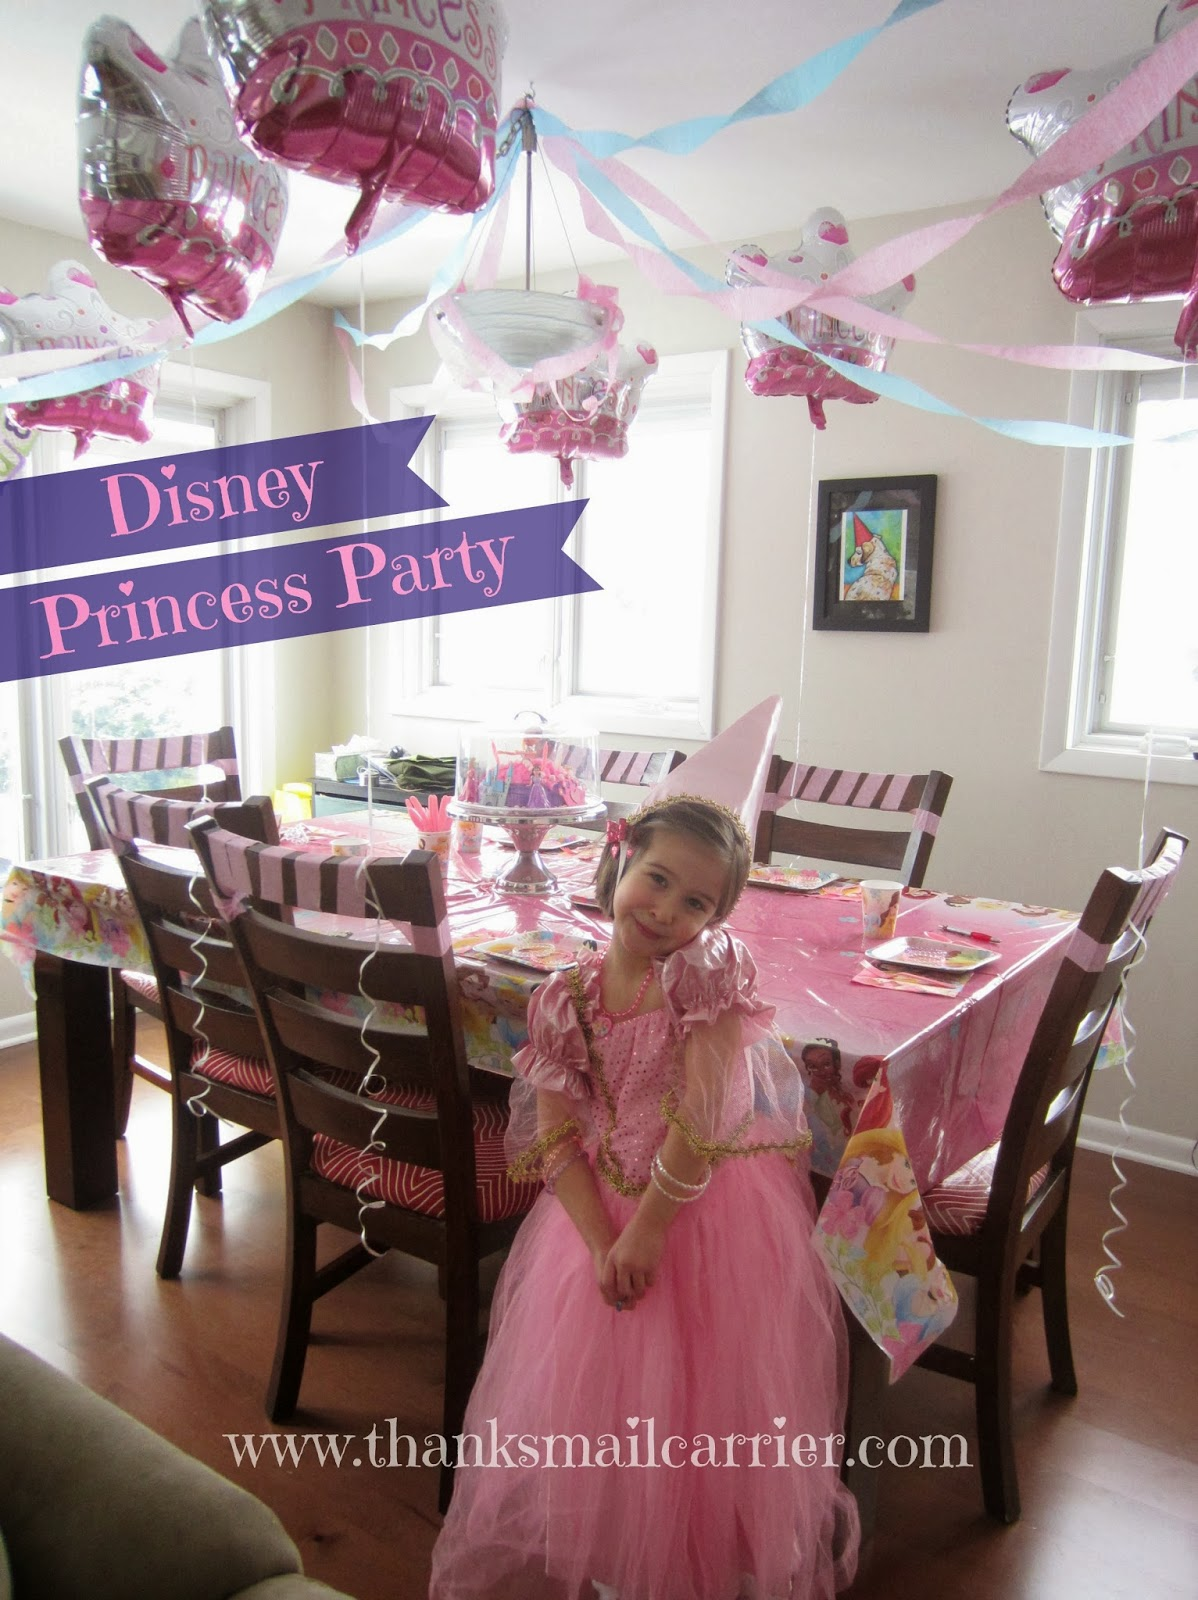 Disney Princess Party